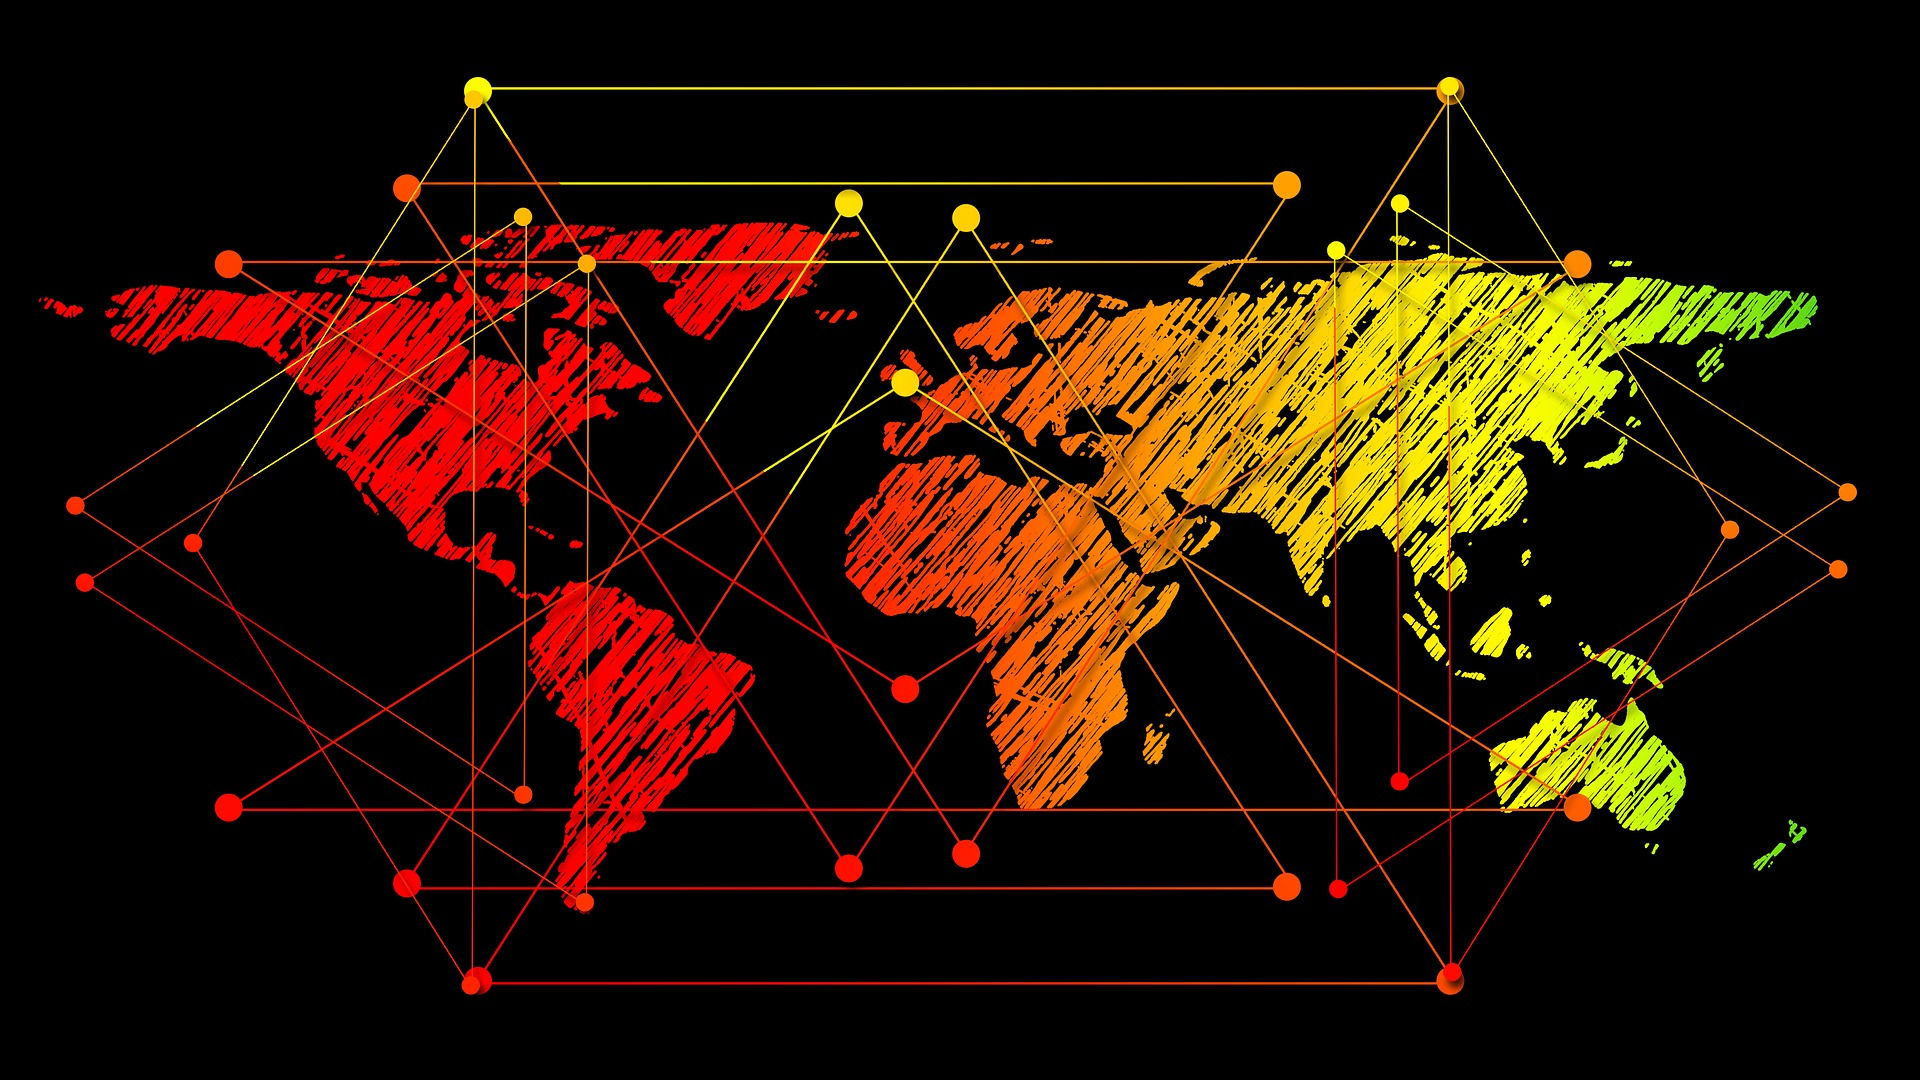 Global graphical web. Photo credit: geralt, Pixabay.